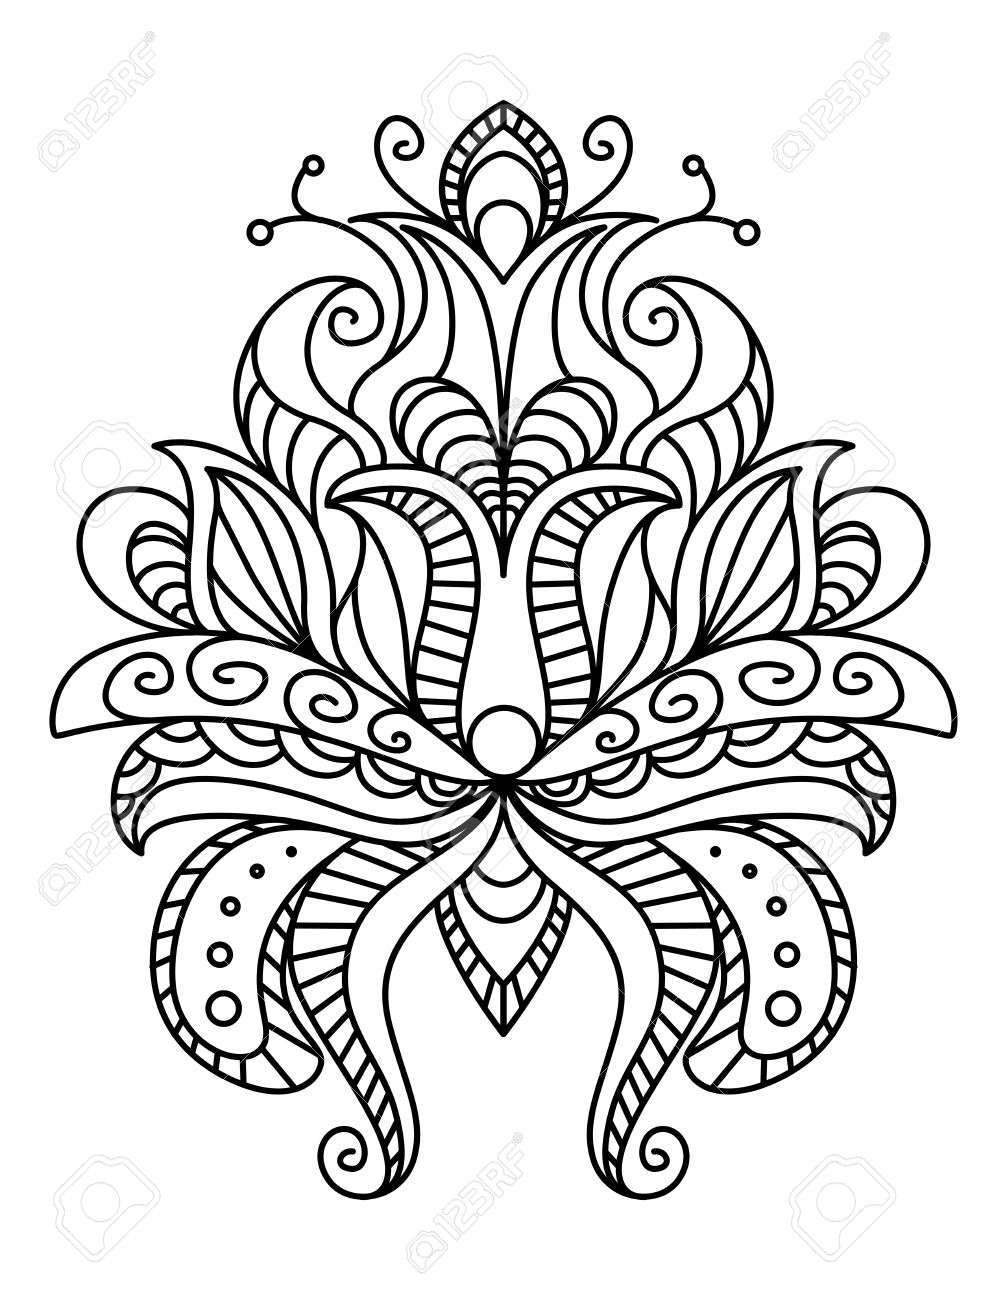 1007x1300 Ornate Paisley Floral Element In A Black And White Line Drawing